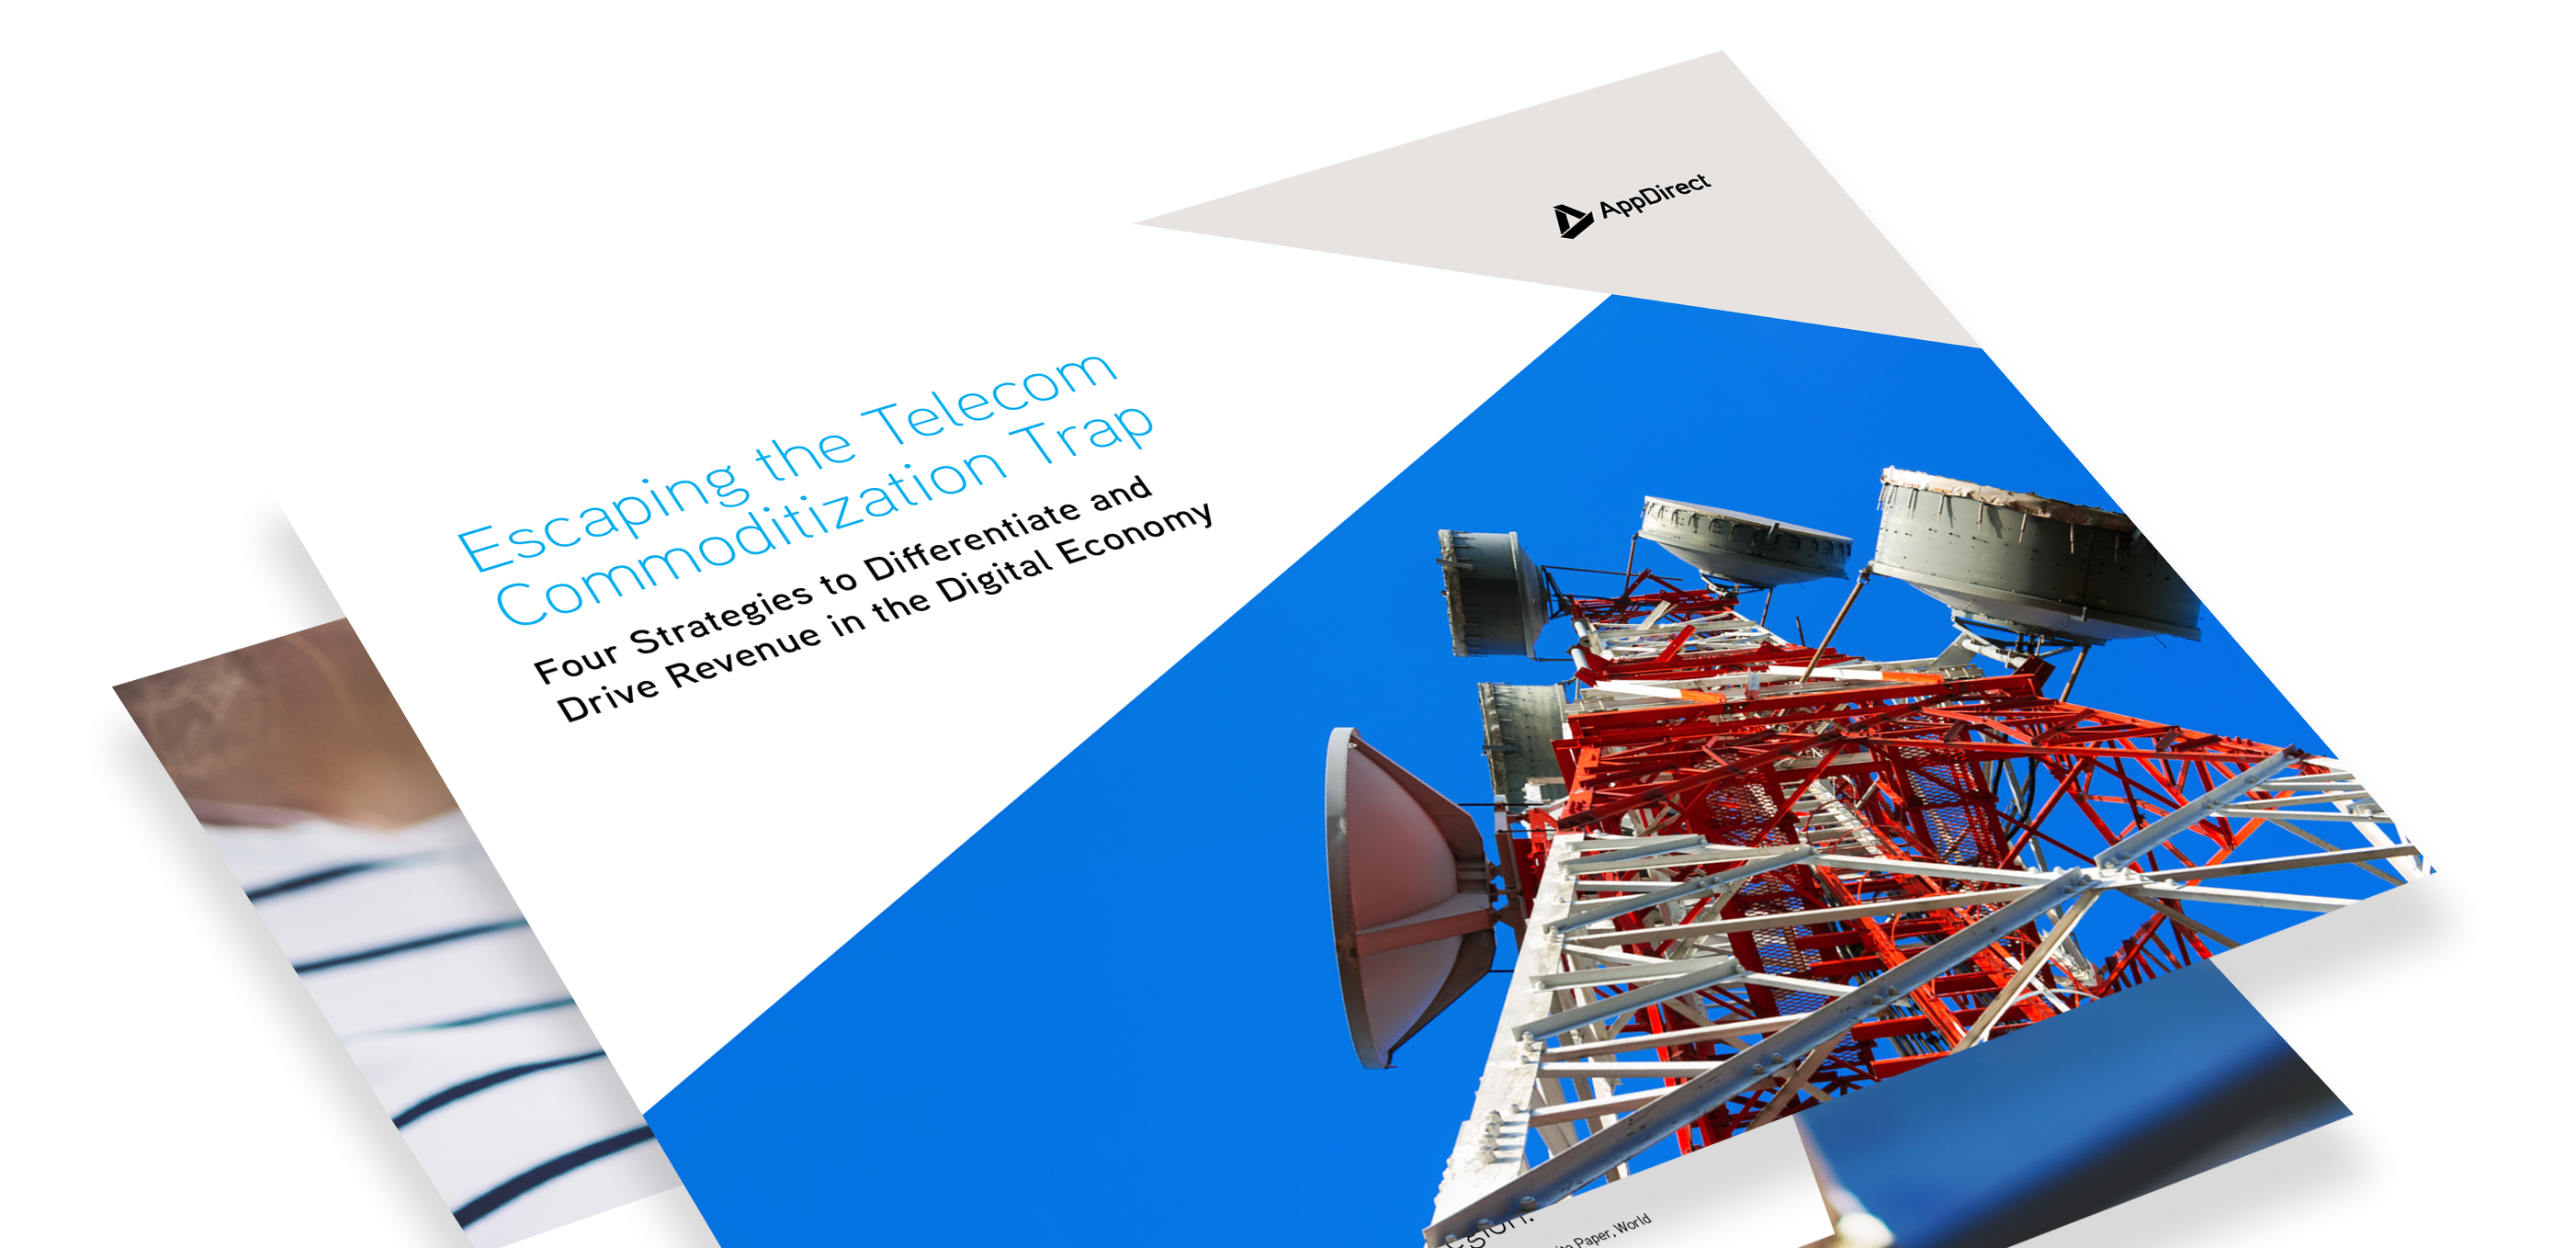 Escaping the Telecom Commoditization Trap